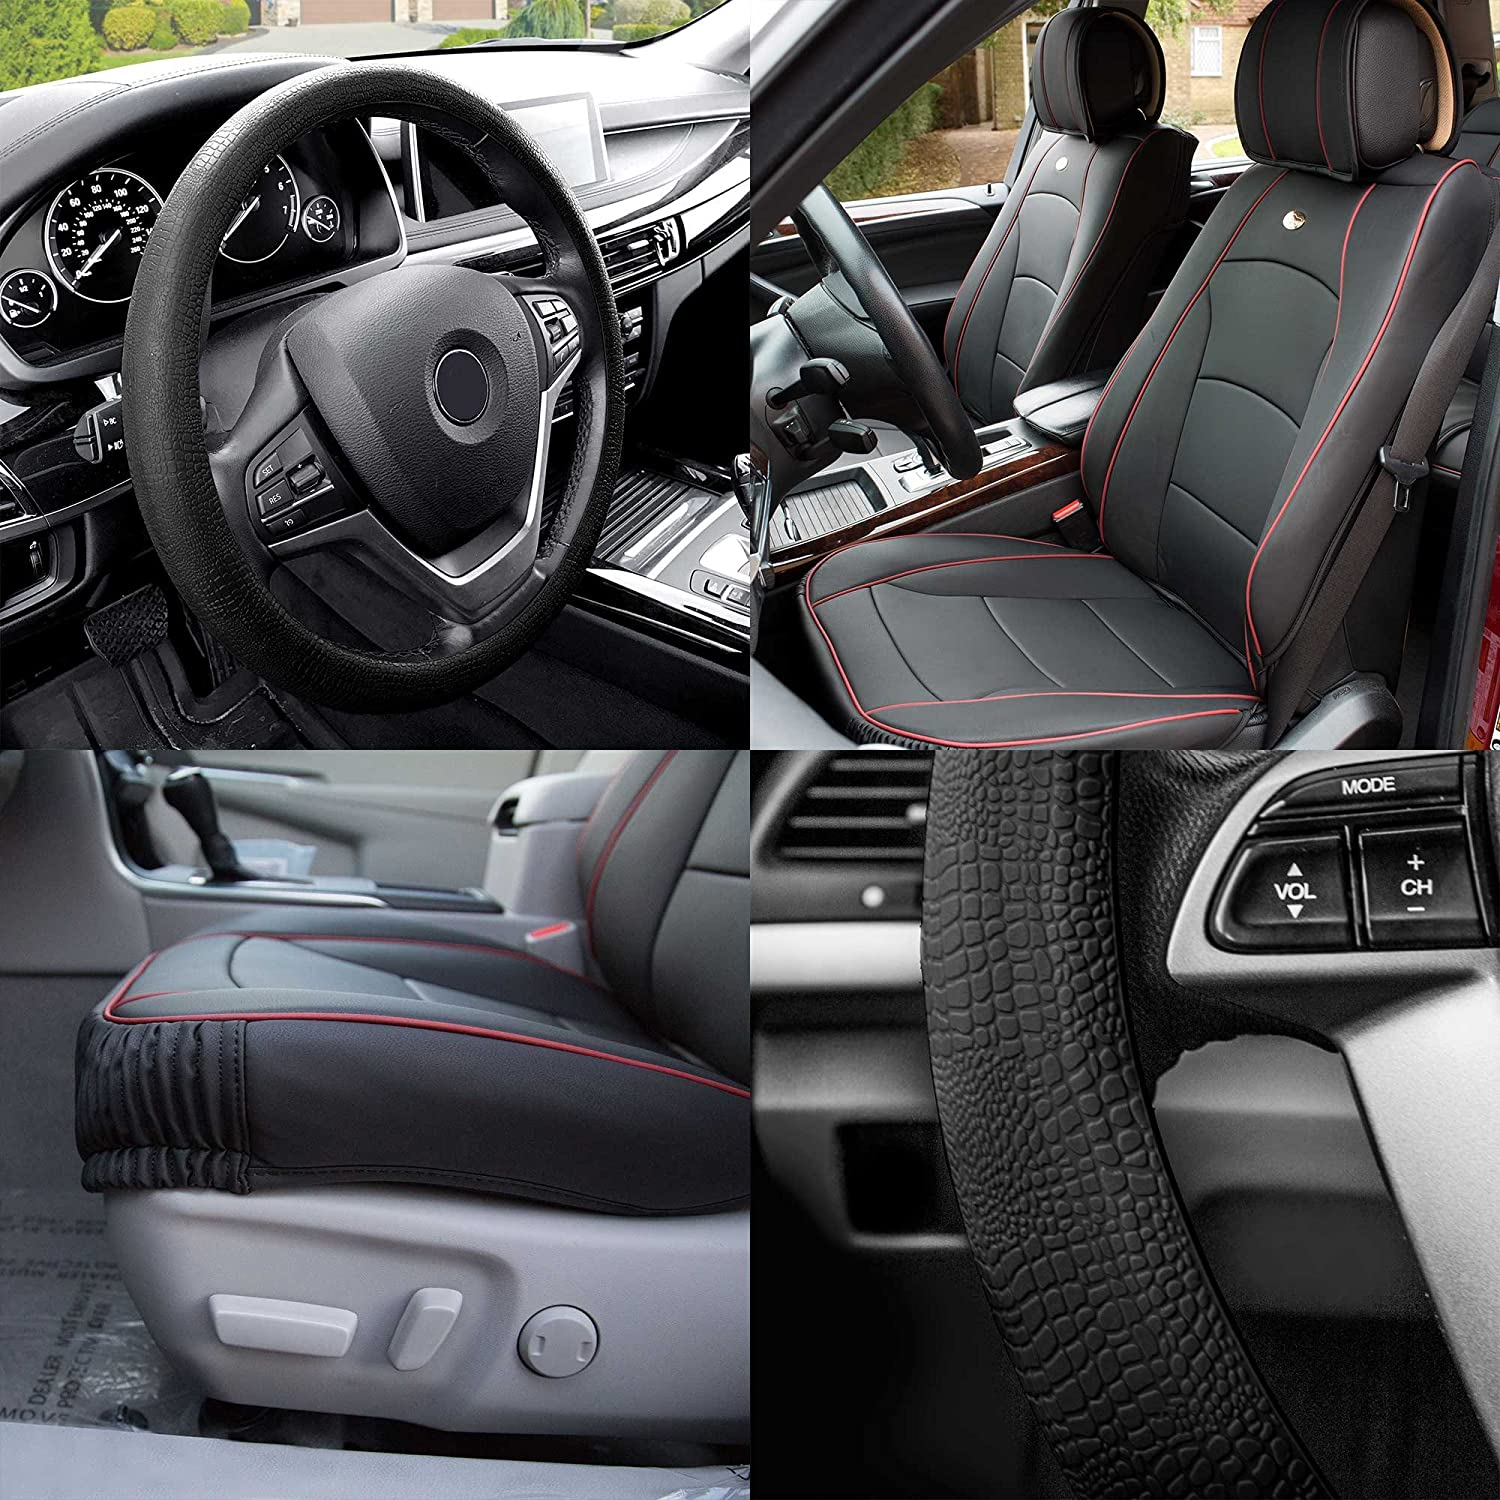 FH Group PU205102 Ultra Comfort Leatherette Cushion Pad Pair Set Seat Covers, Black w. Red Trim Color - Fit Most Car, Truck, SUV, or Van